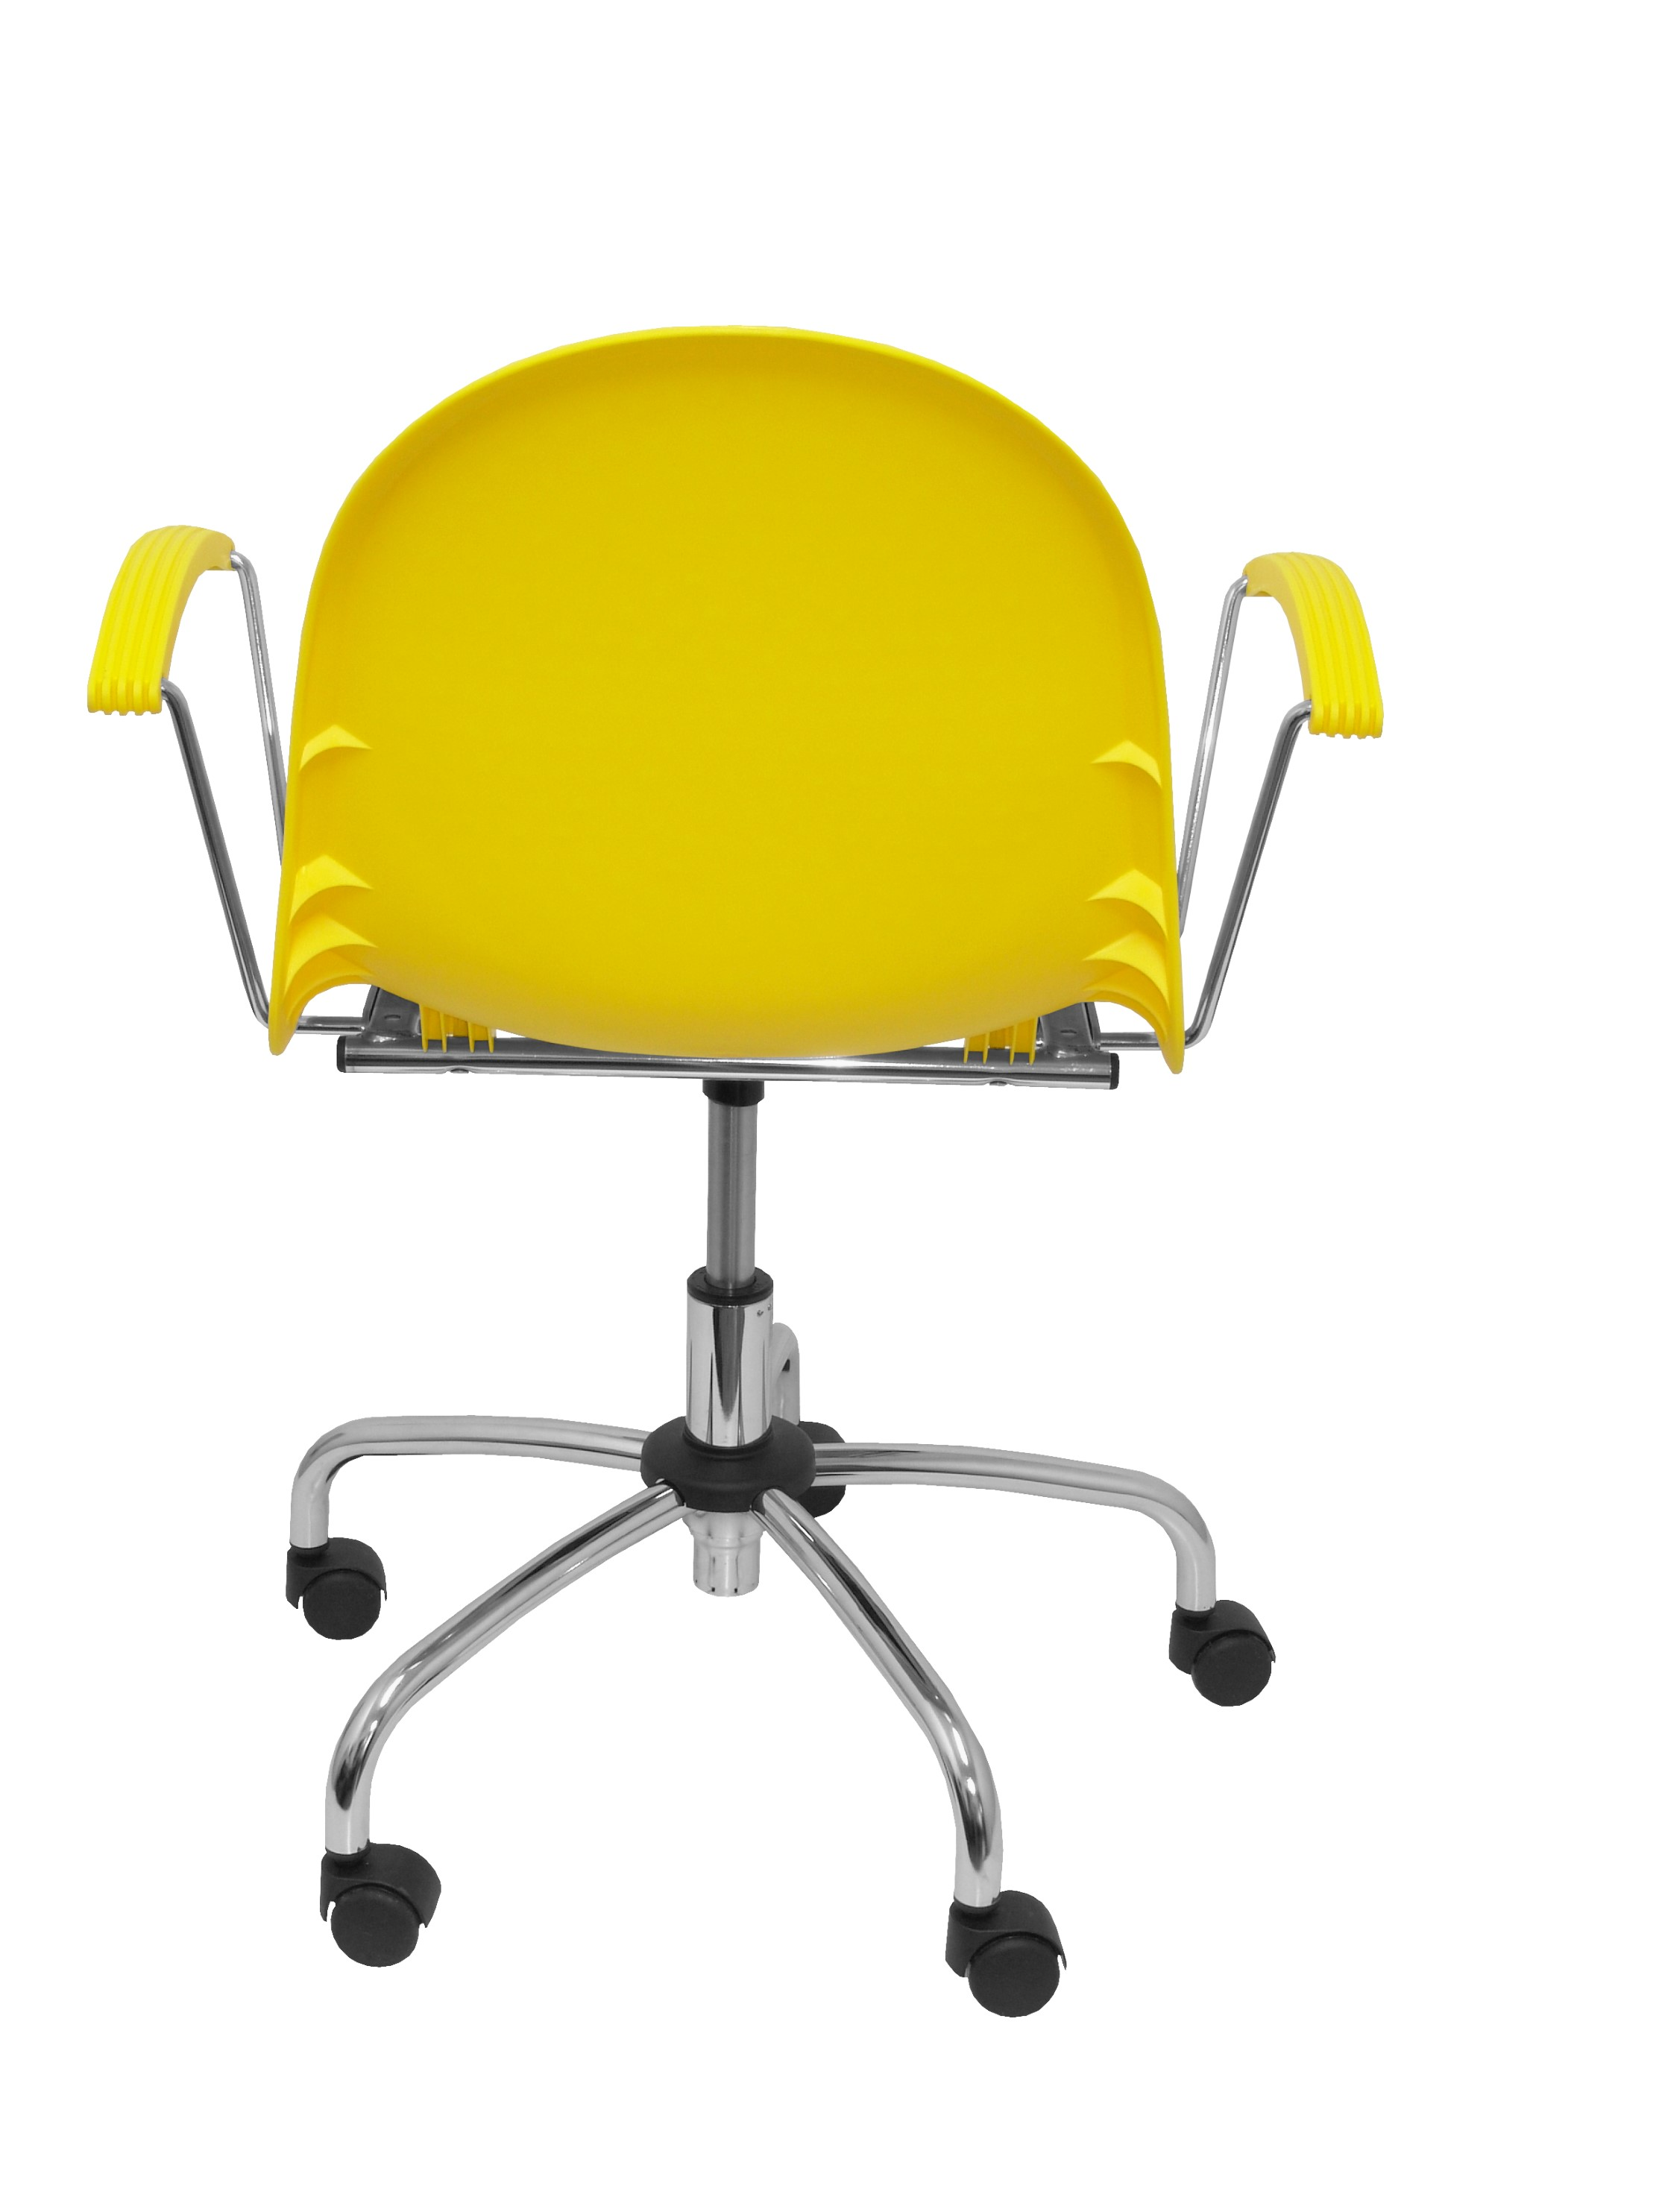 Silla  Ves giratoria color amarillo